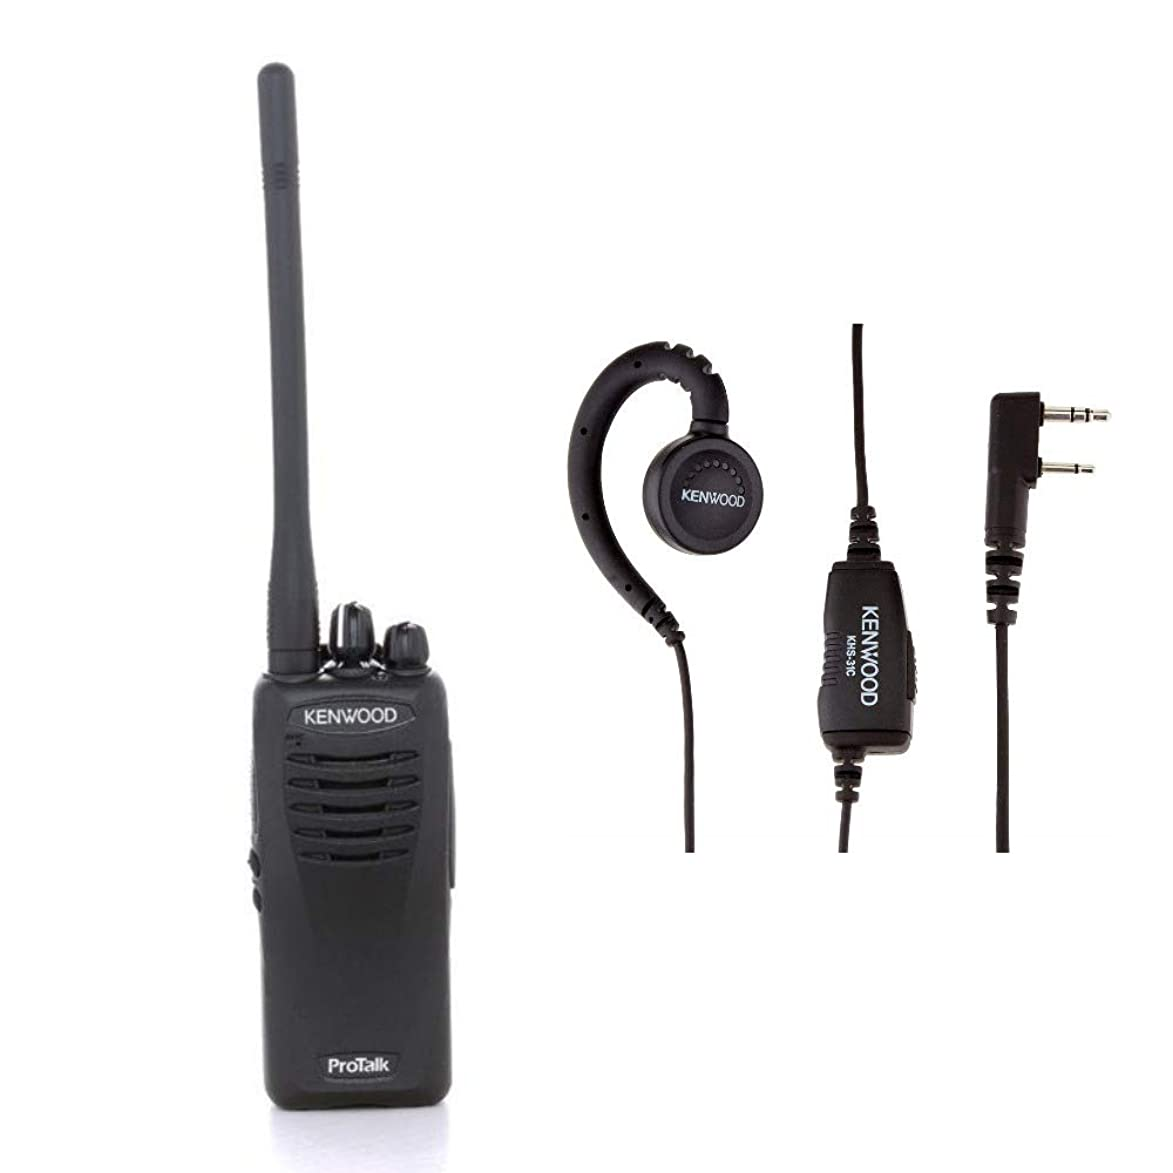 Kenwood ProTalk VHF 2-Watt 16-Channel Portable 2-Way Radio with Ear Loop Earpiece Bundle